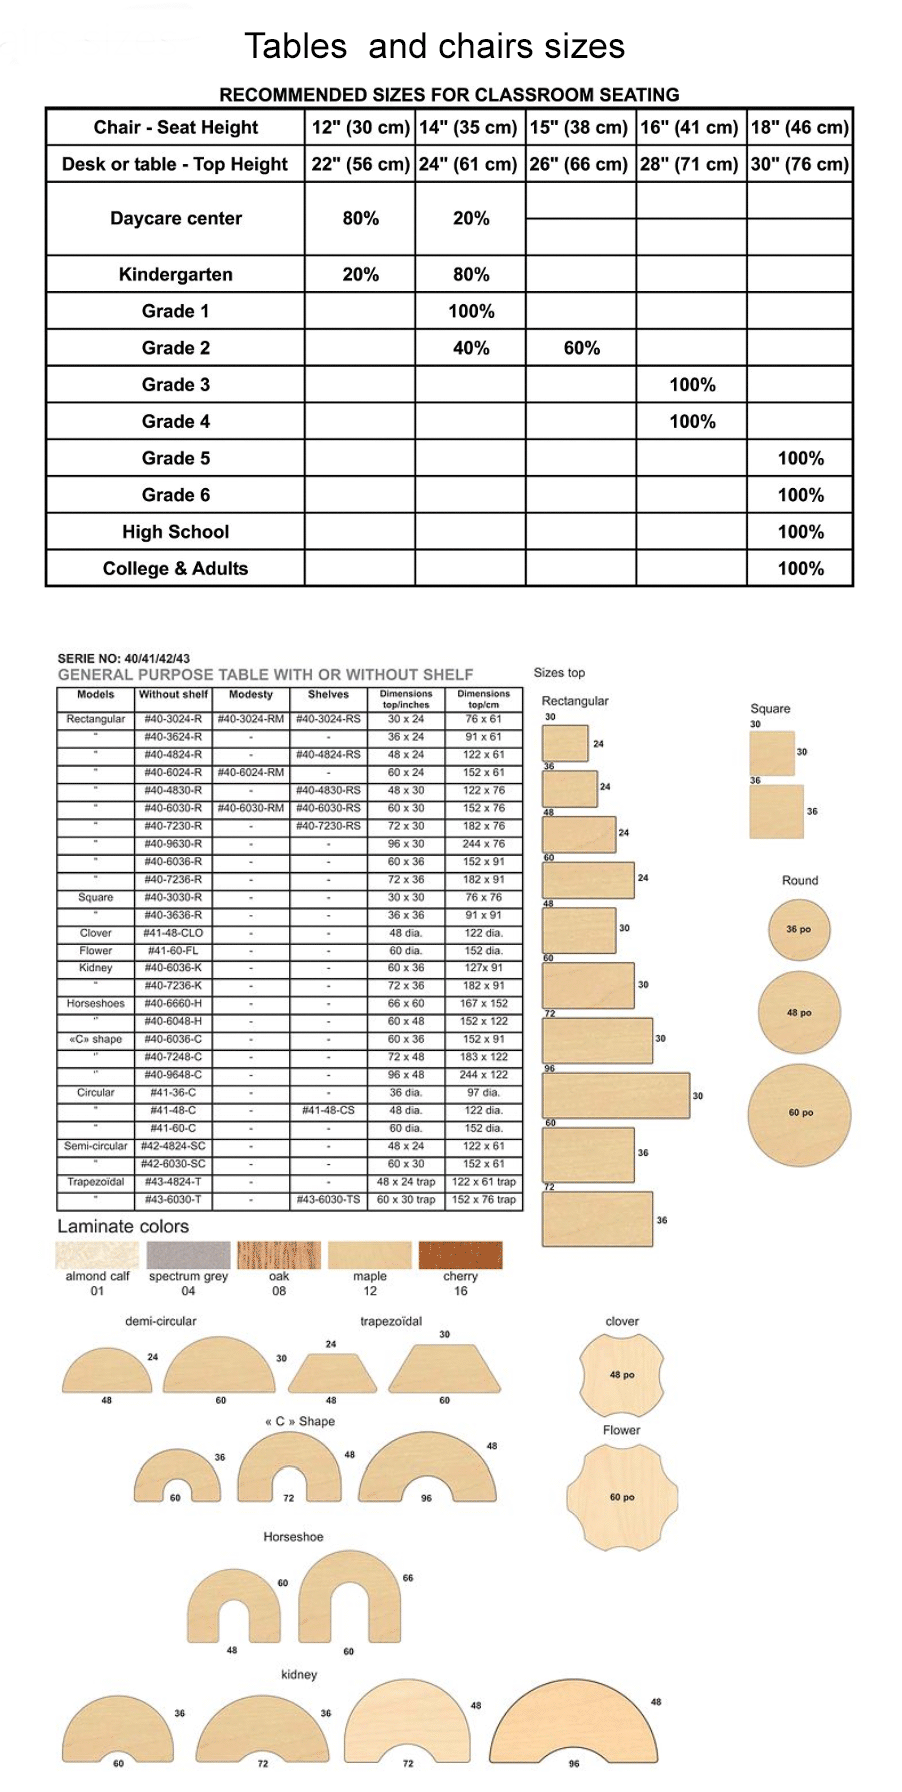 Tables and chairs sizes